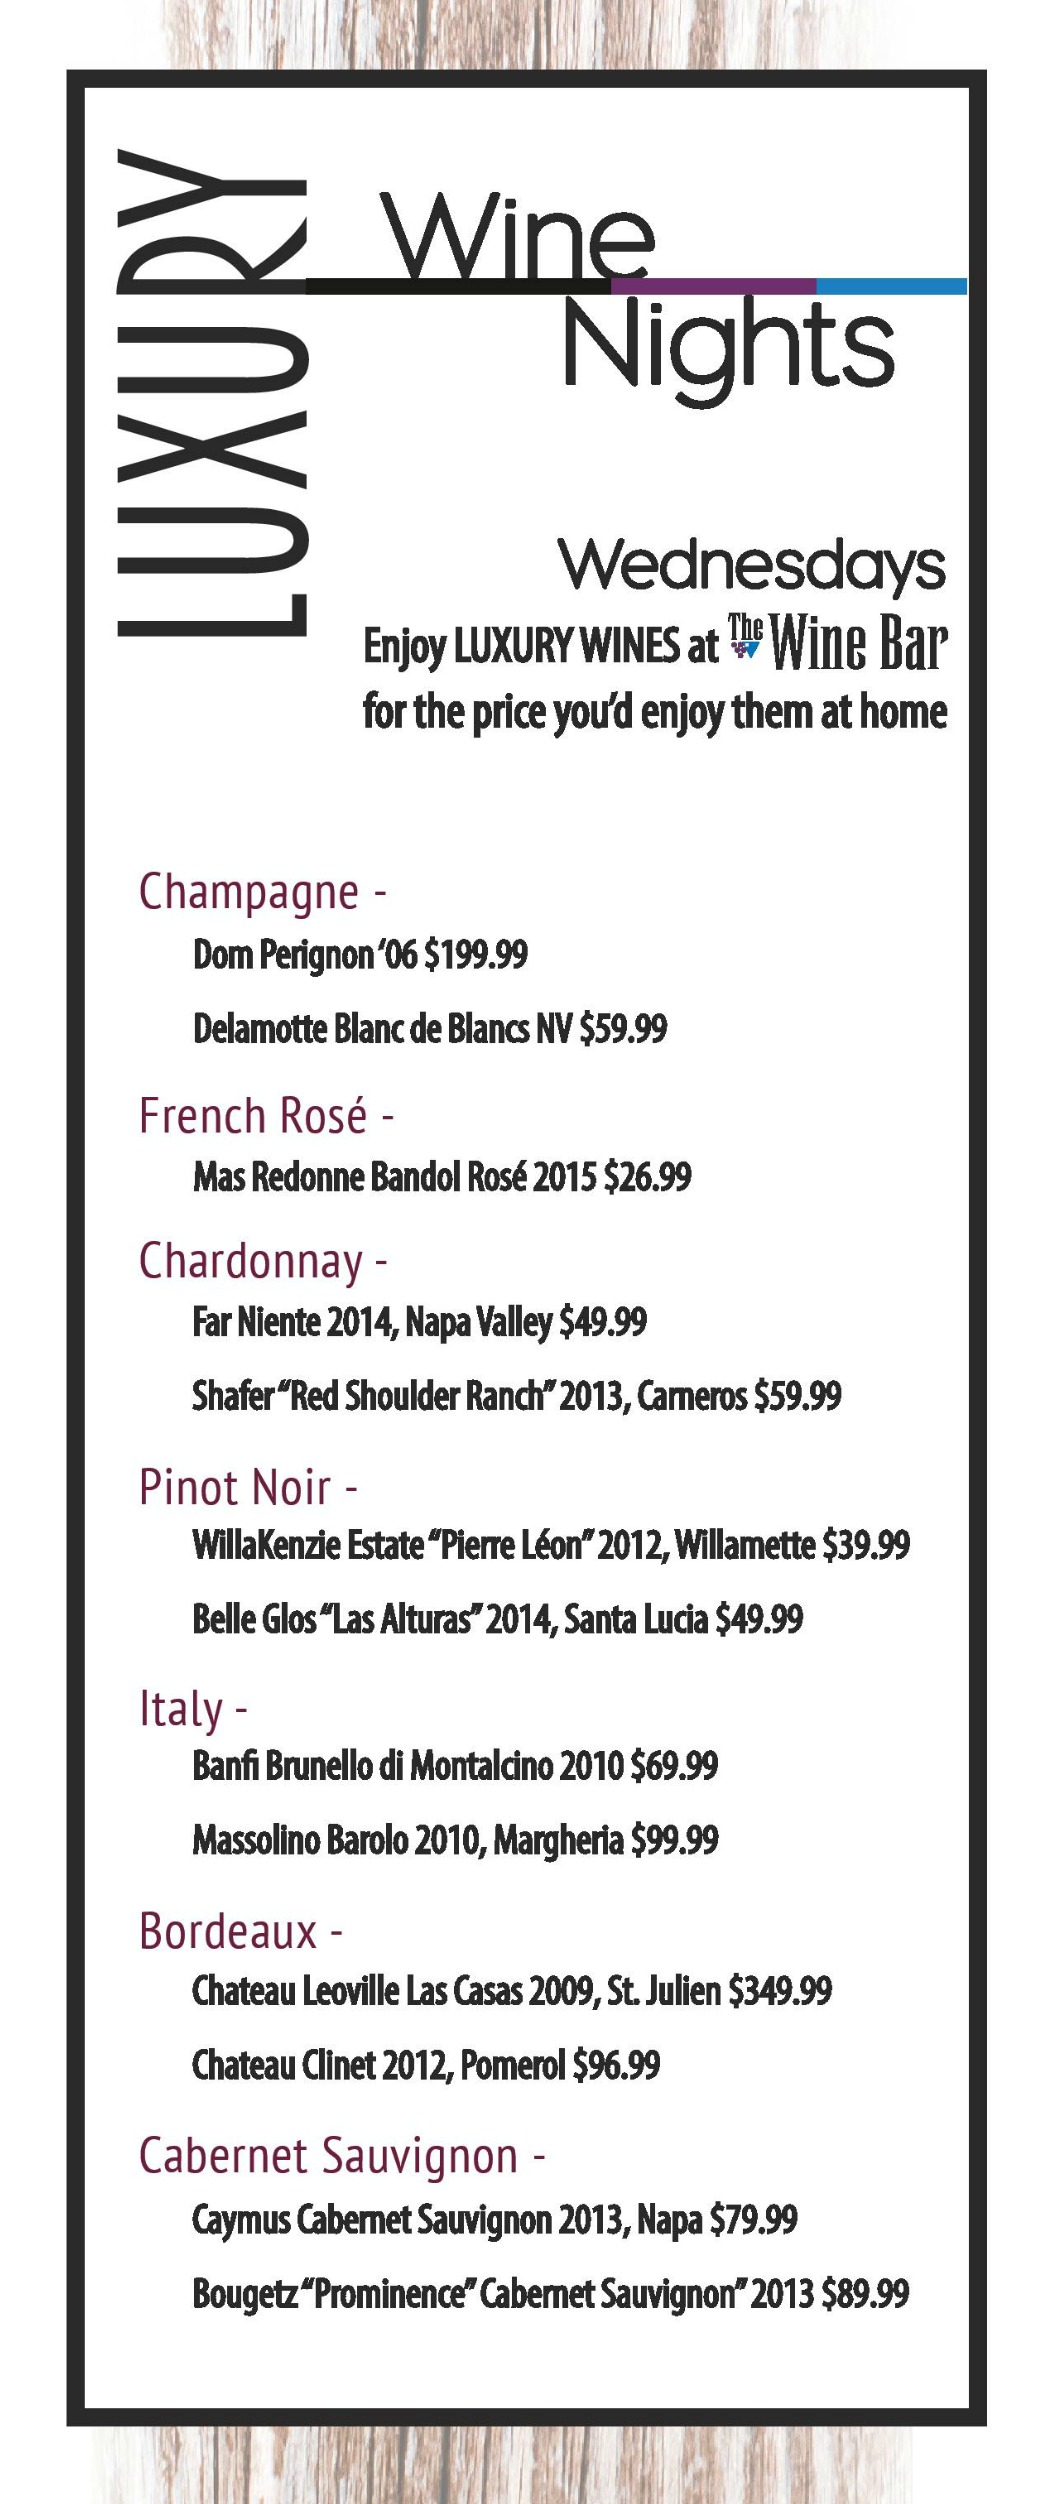 Featured Wine_Flap_GB_05_10_16-page-002.jpg